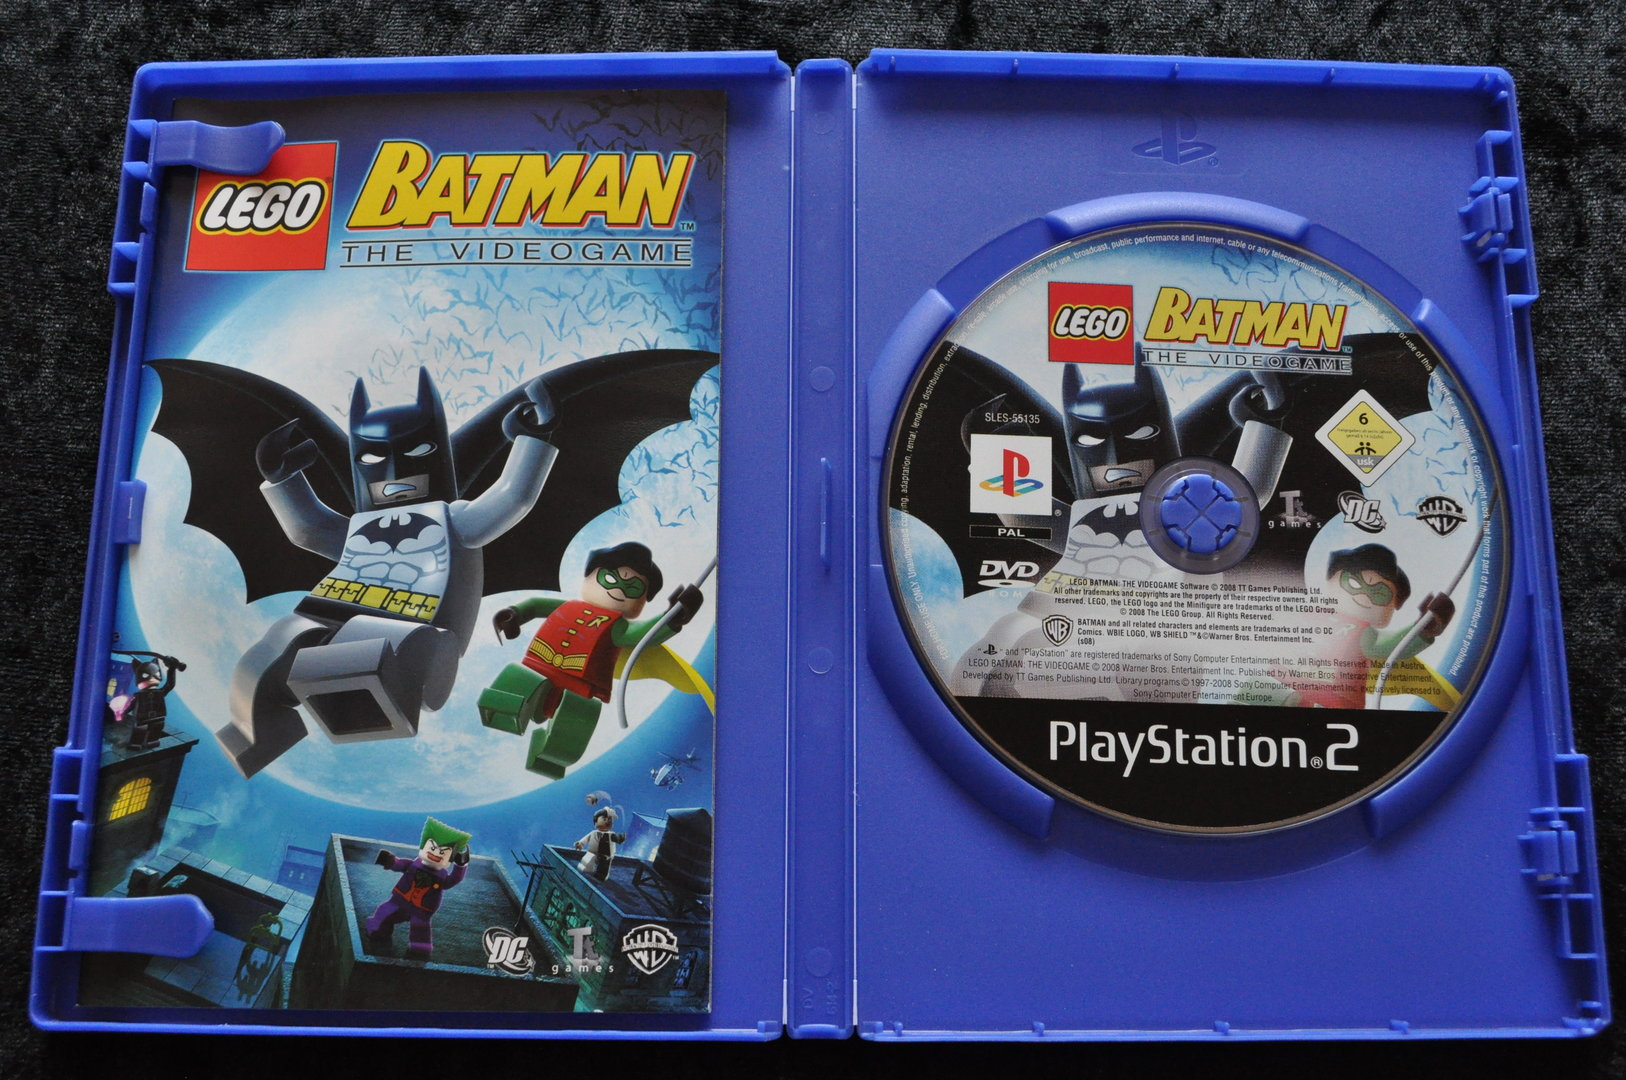 Lego batman playstation 2 games the sims 2 mobile game 320x240